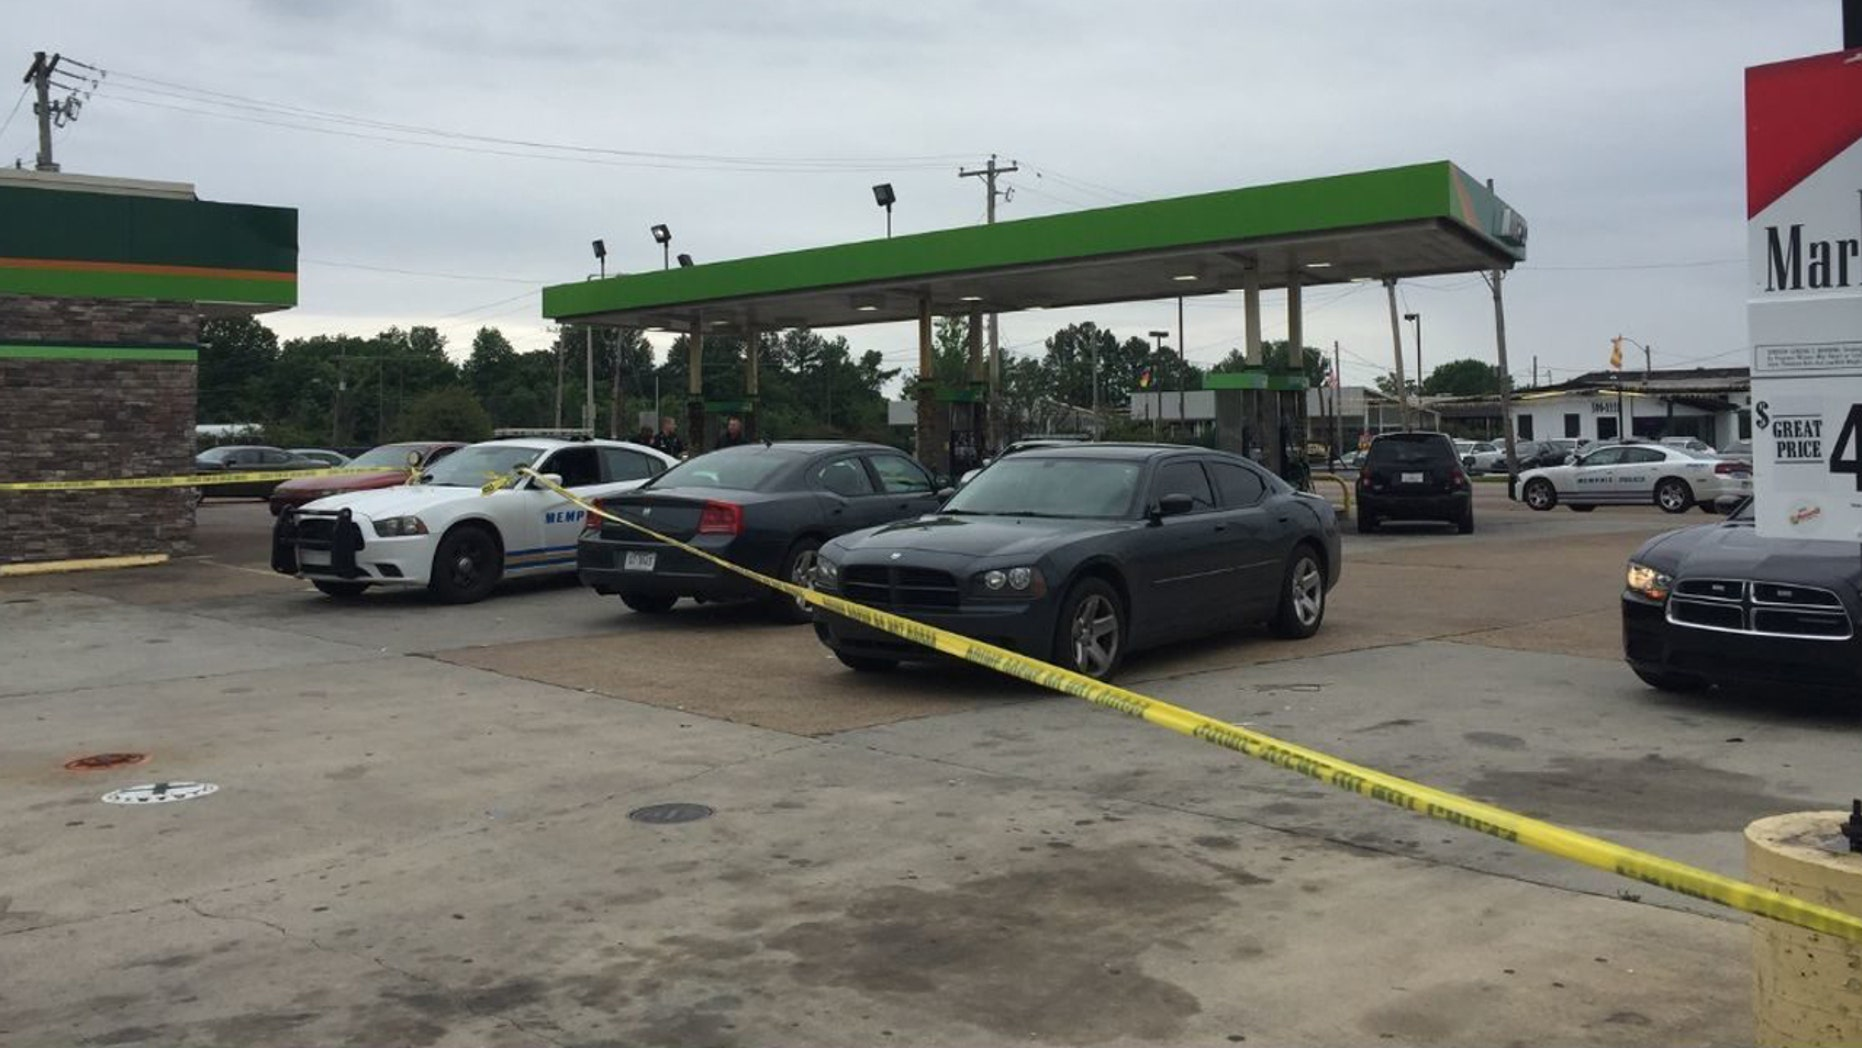 An off-duty police shot at multiple suspects after they robbed him at gunpoint.